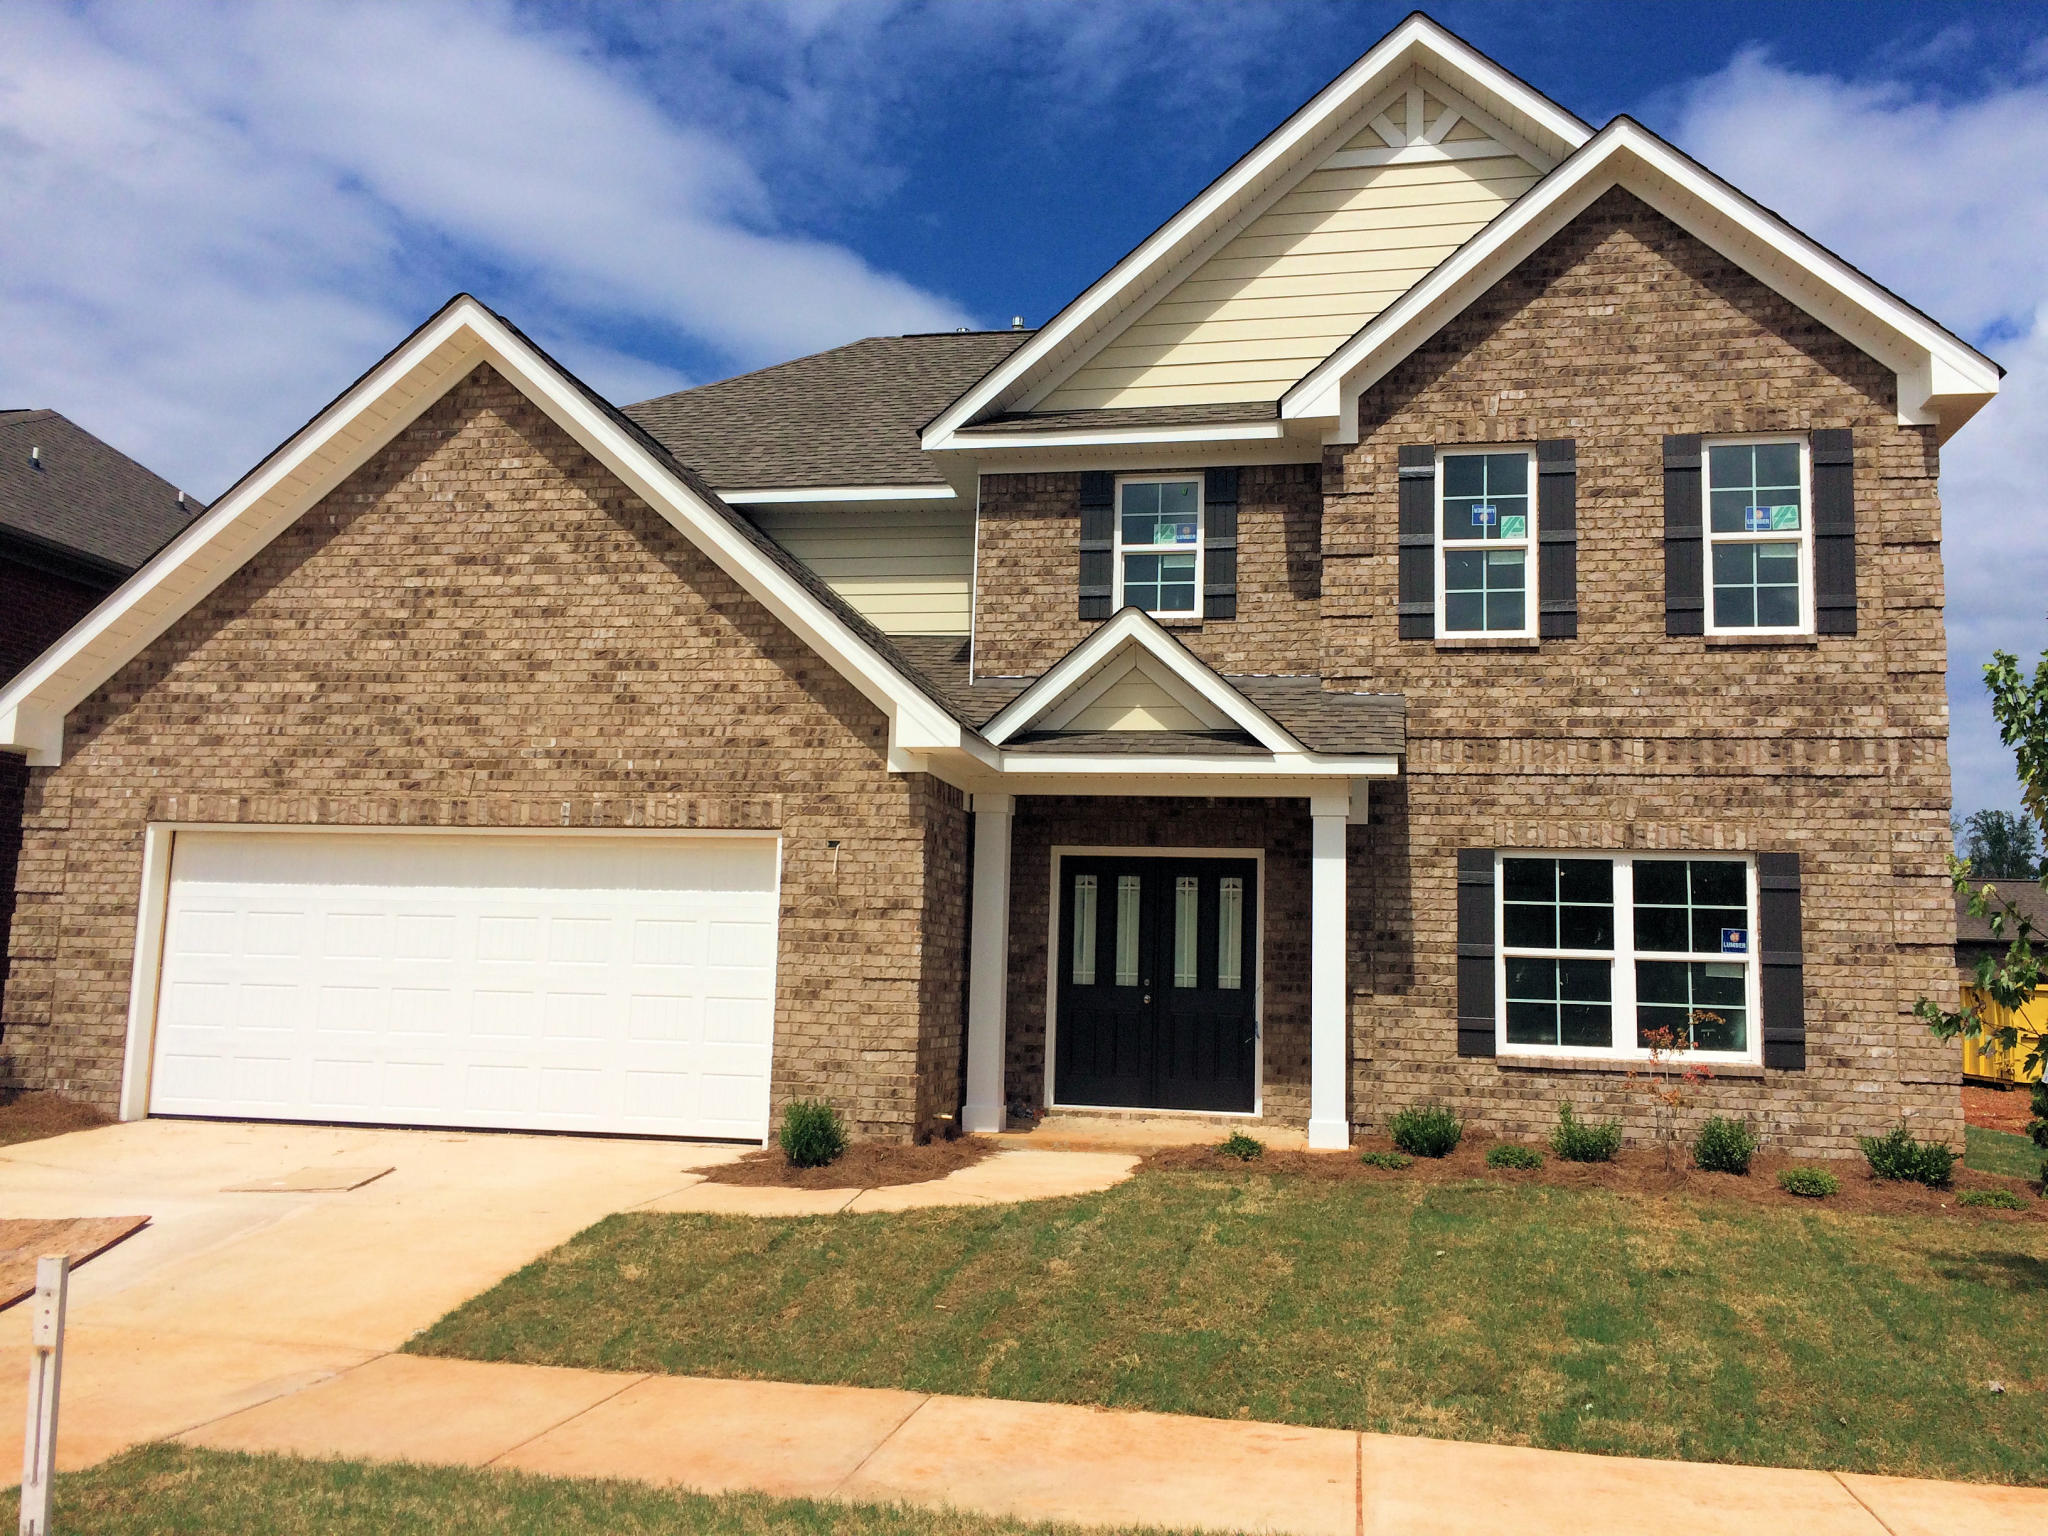 Westin Plan For Sale - Hueytown, AL | Trulia